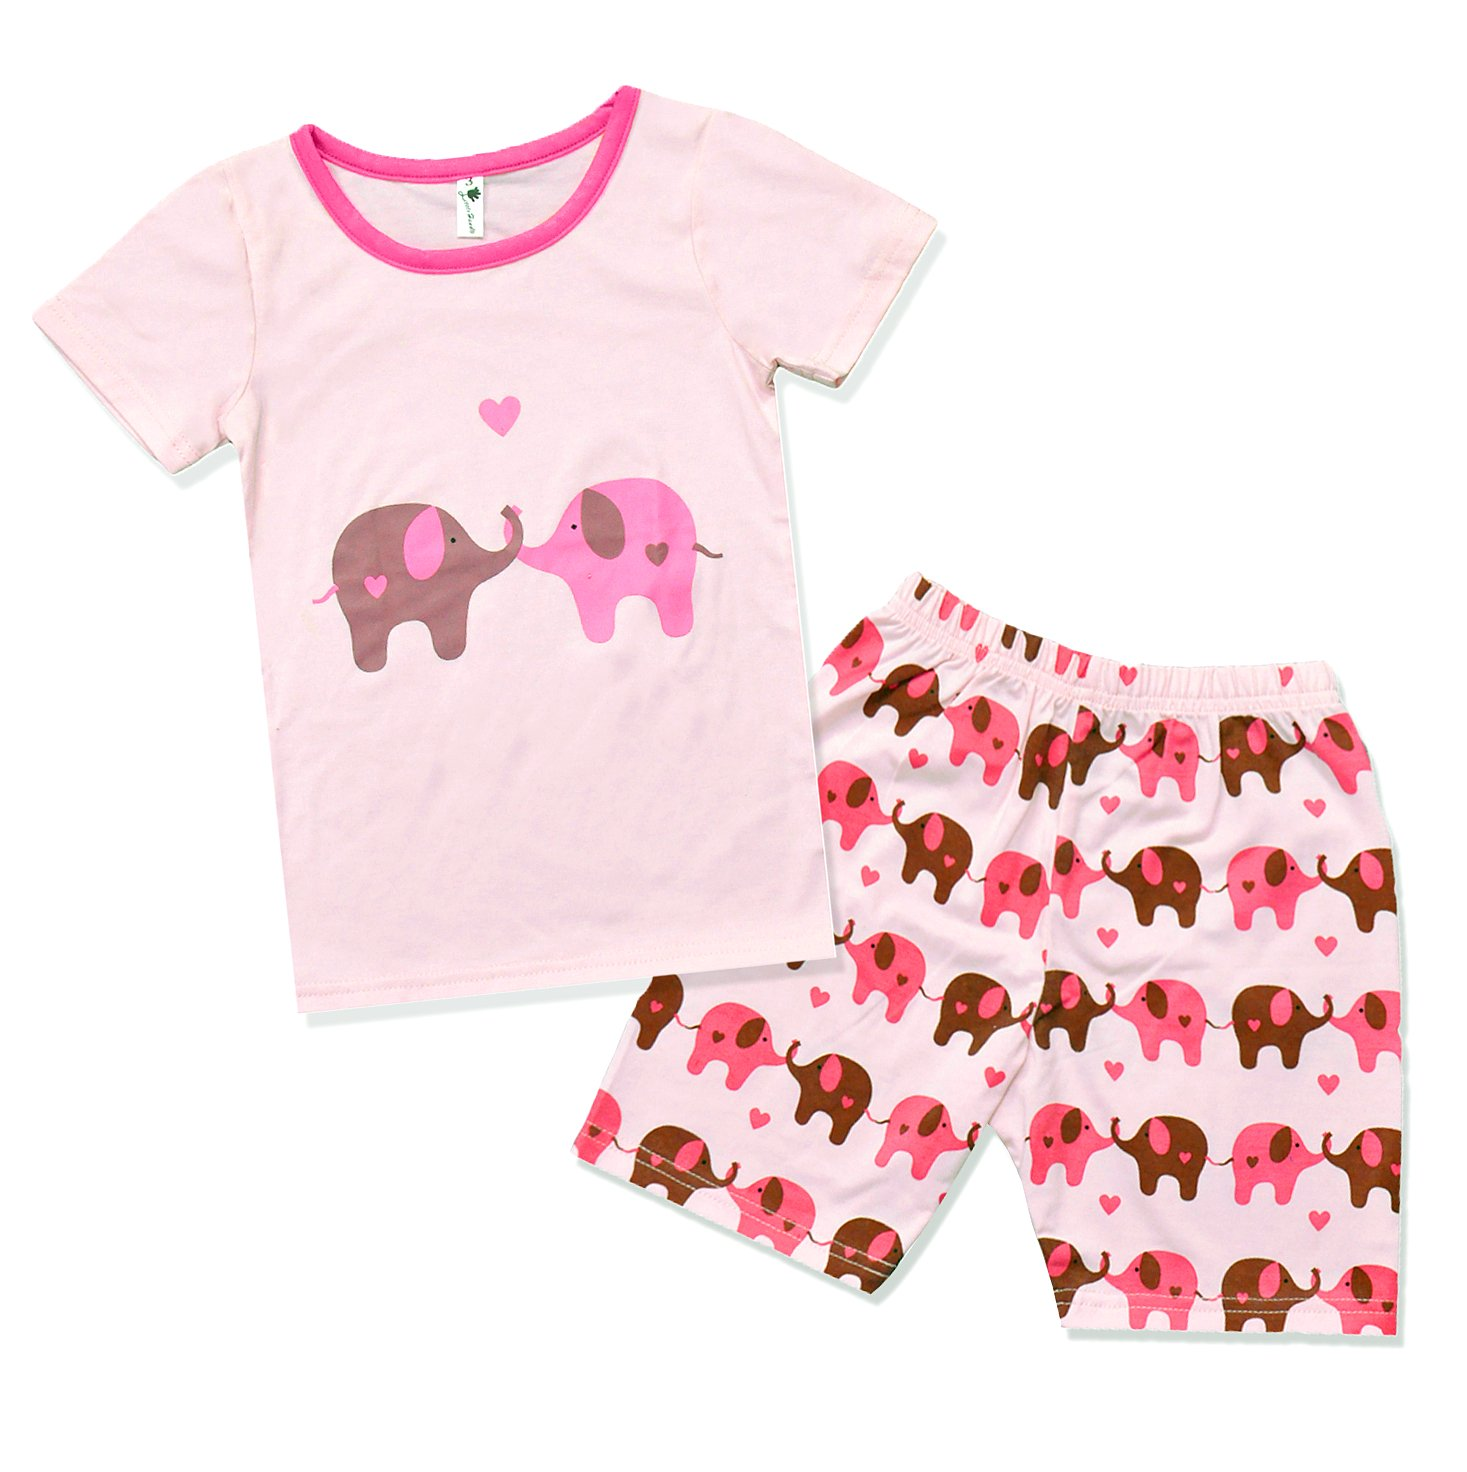 Little Hand Girl Pyjamas Animal 100% Cotton Children Long Sleeve Clothing Sets Kids Sleepwear 2 Pcs PJS Size 2-7yrs